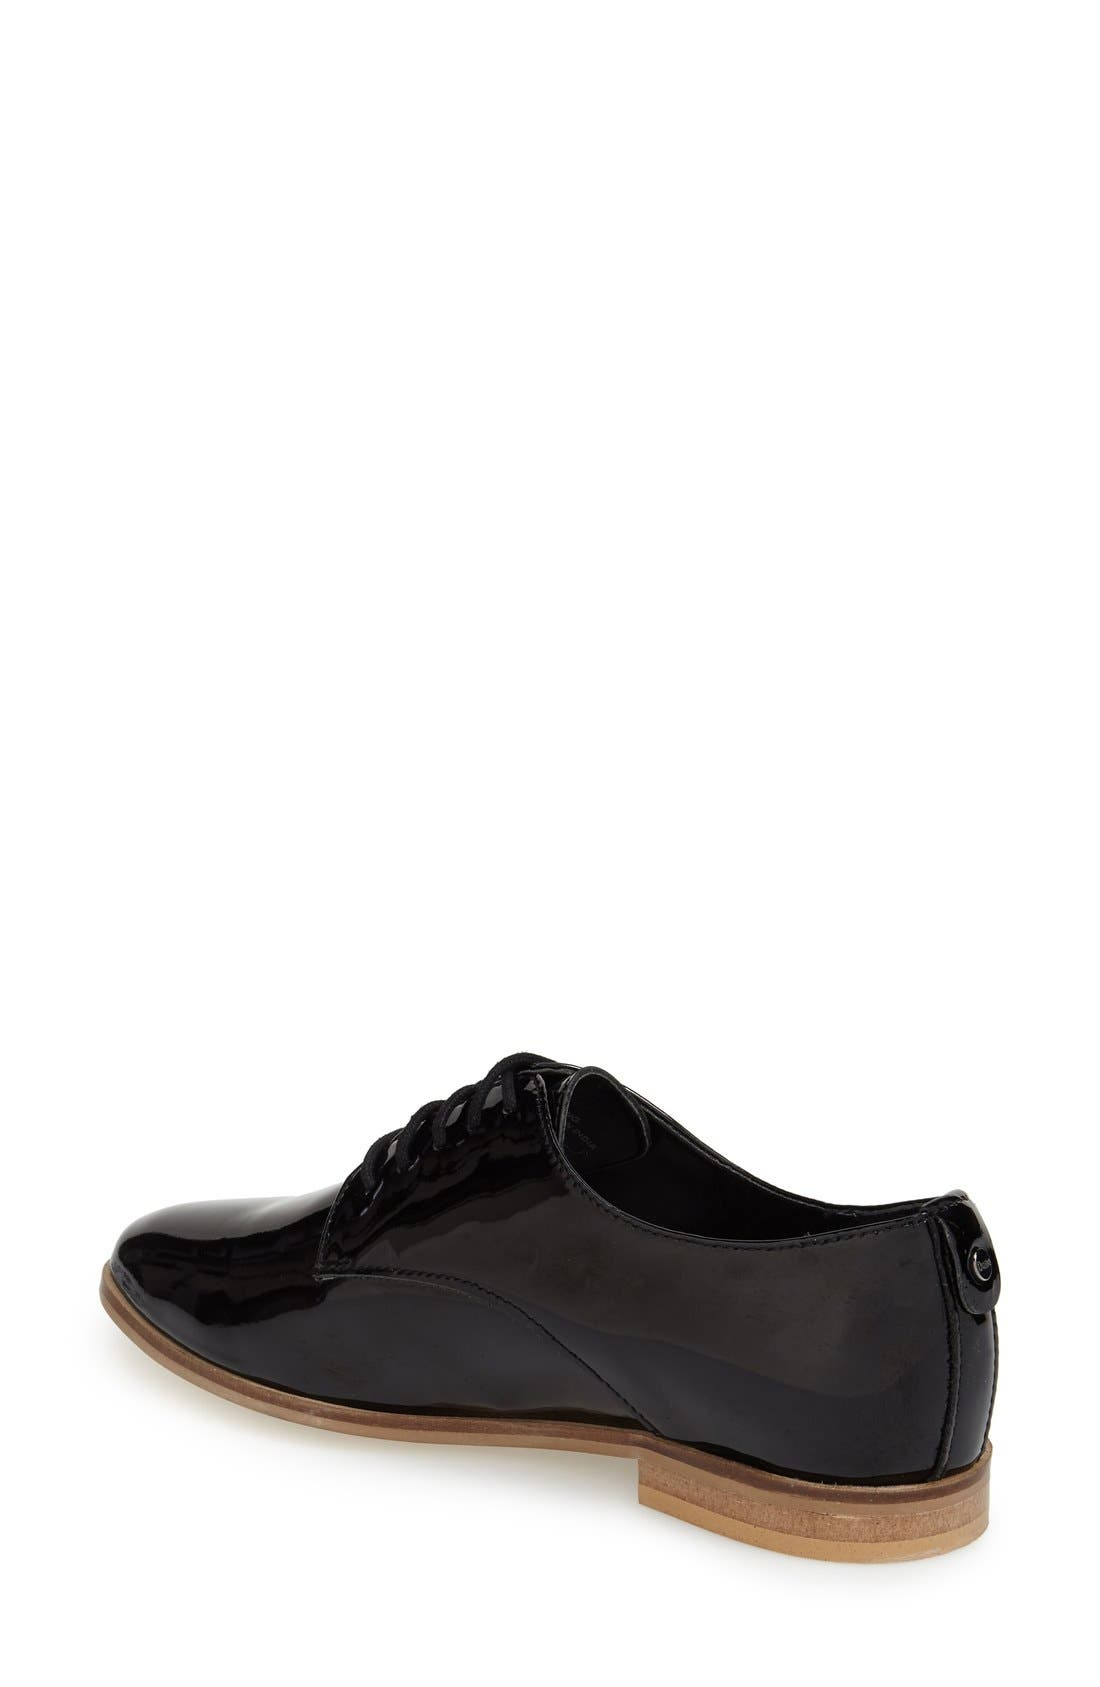 'Flossy' Patent Leather Oxford,                             Alternate thumbnail 4, color,                             005